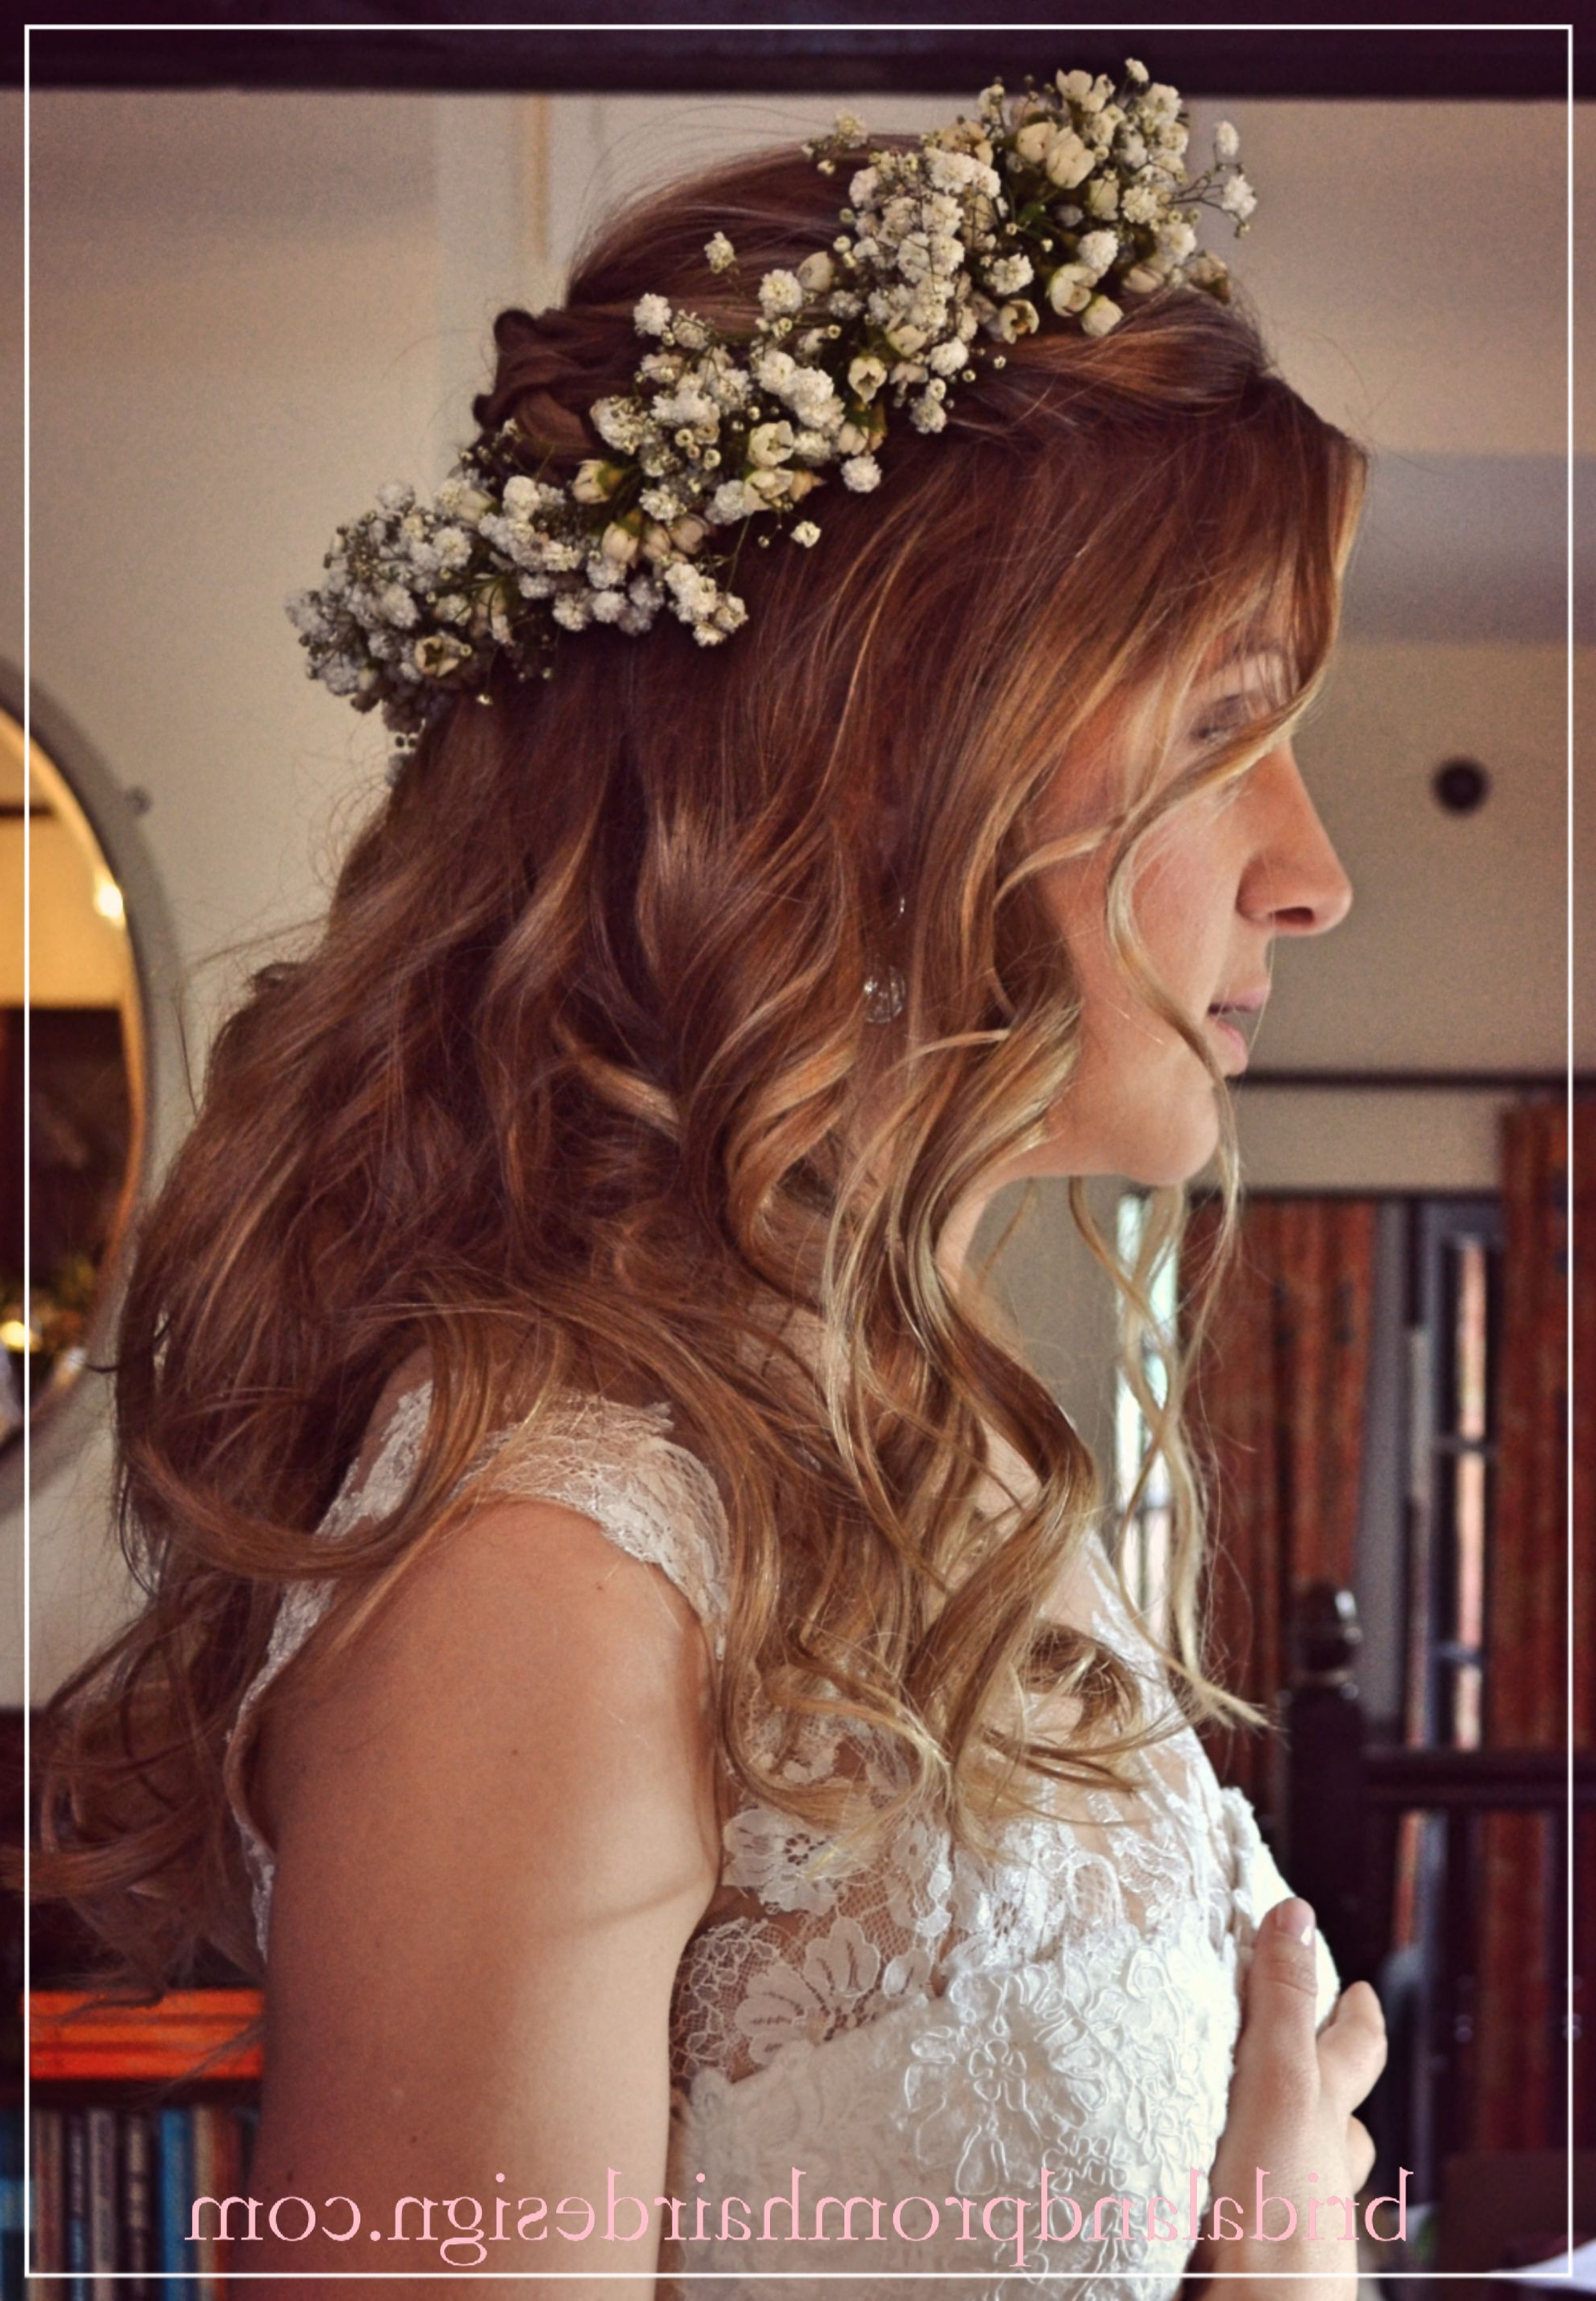 Wedding Hair, Prom Hair, Flower Crown, Boho Half Up Half Down Pertaining To Most Recently Released Floral Crown Half Up Half Down Bridal Hairstyles (View 19 of 20)